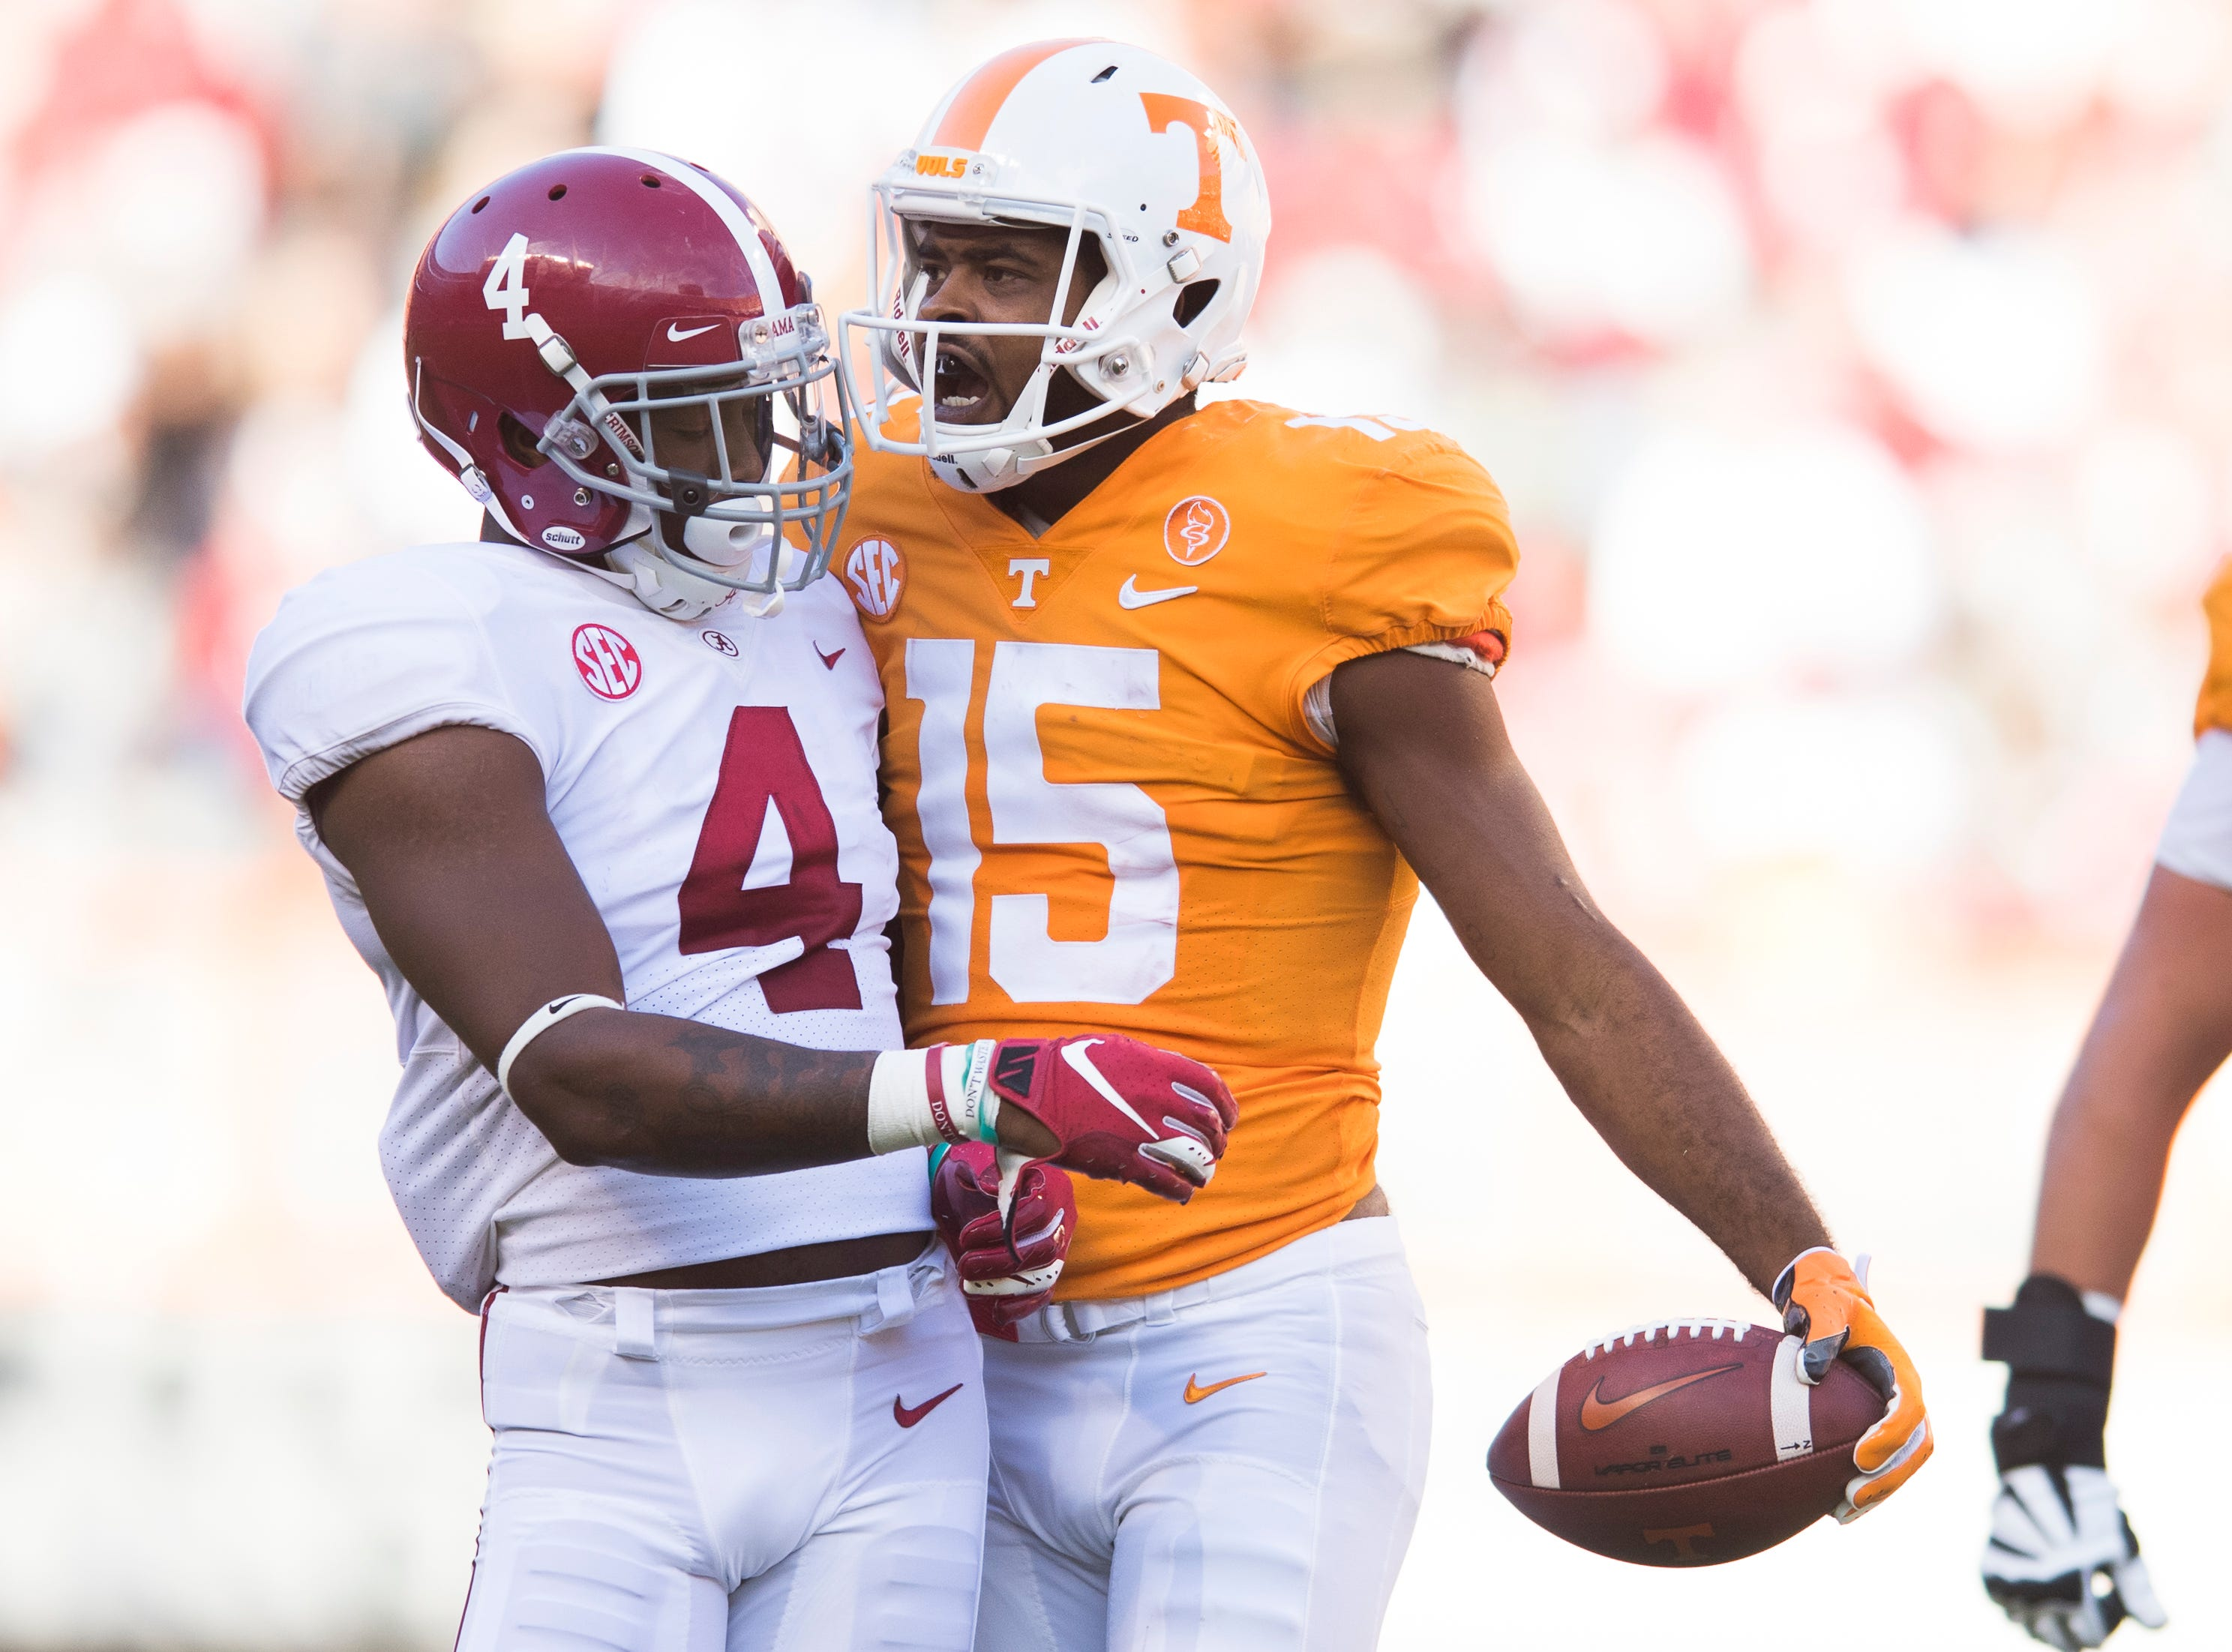 Tennessee wide receiver Jauan Jennings (15) bumps into  Alabama linebacker Christopher Allen (4) after making a play during a game between Tennessee and Alabama at Neyland Stadium in Knoxville, Tennessee on Saturday, October 20, 2018.